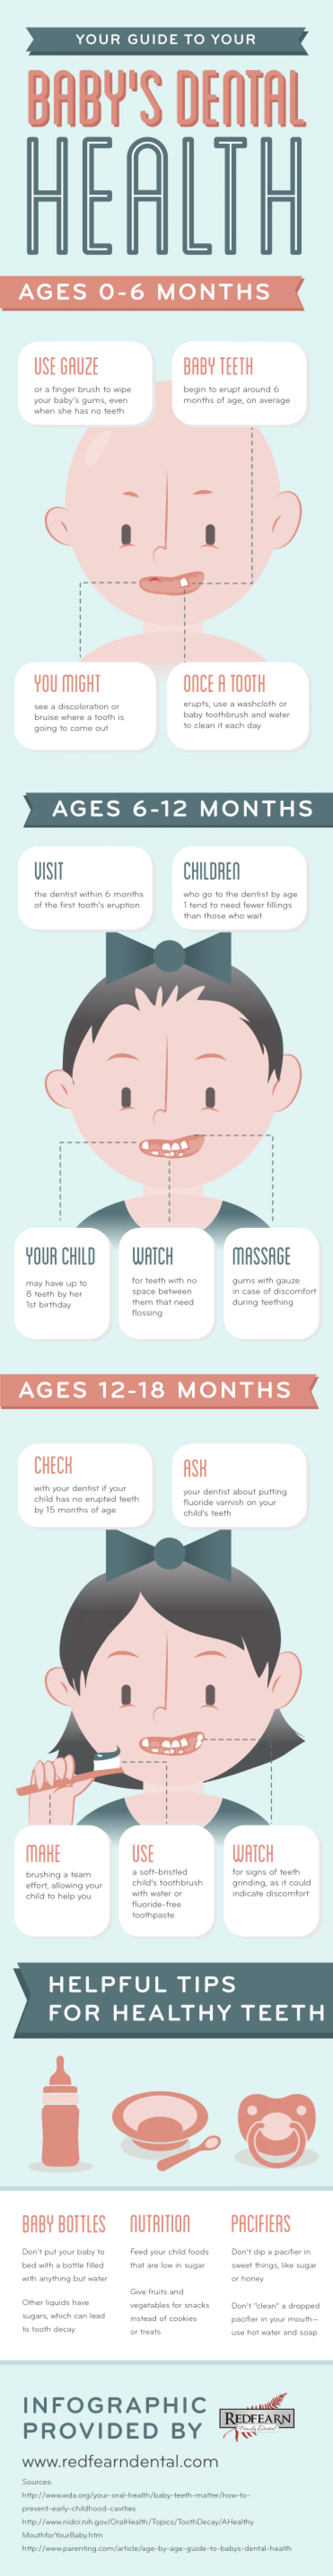 Your Guide to Your Baby's Dental Health  Infographic